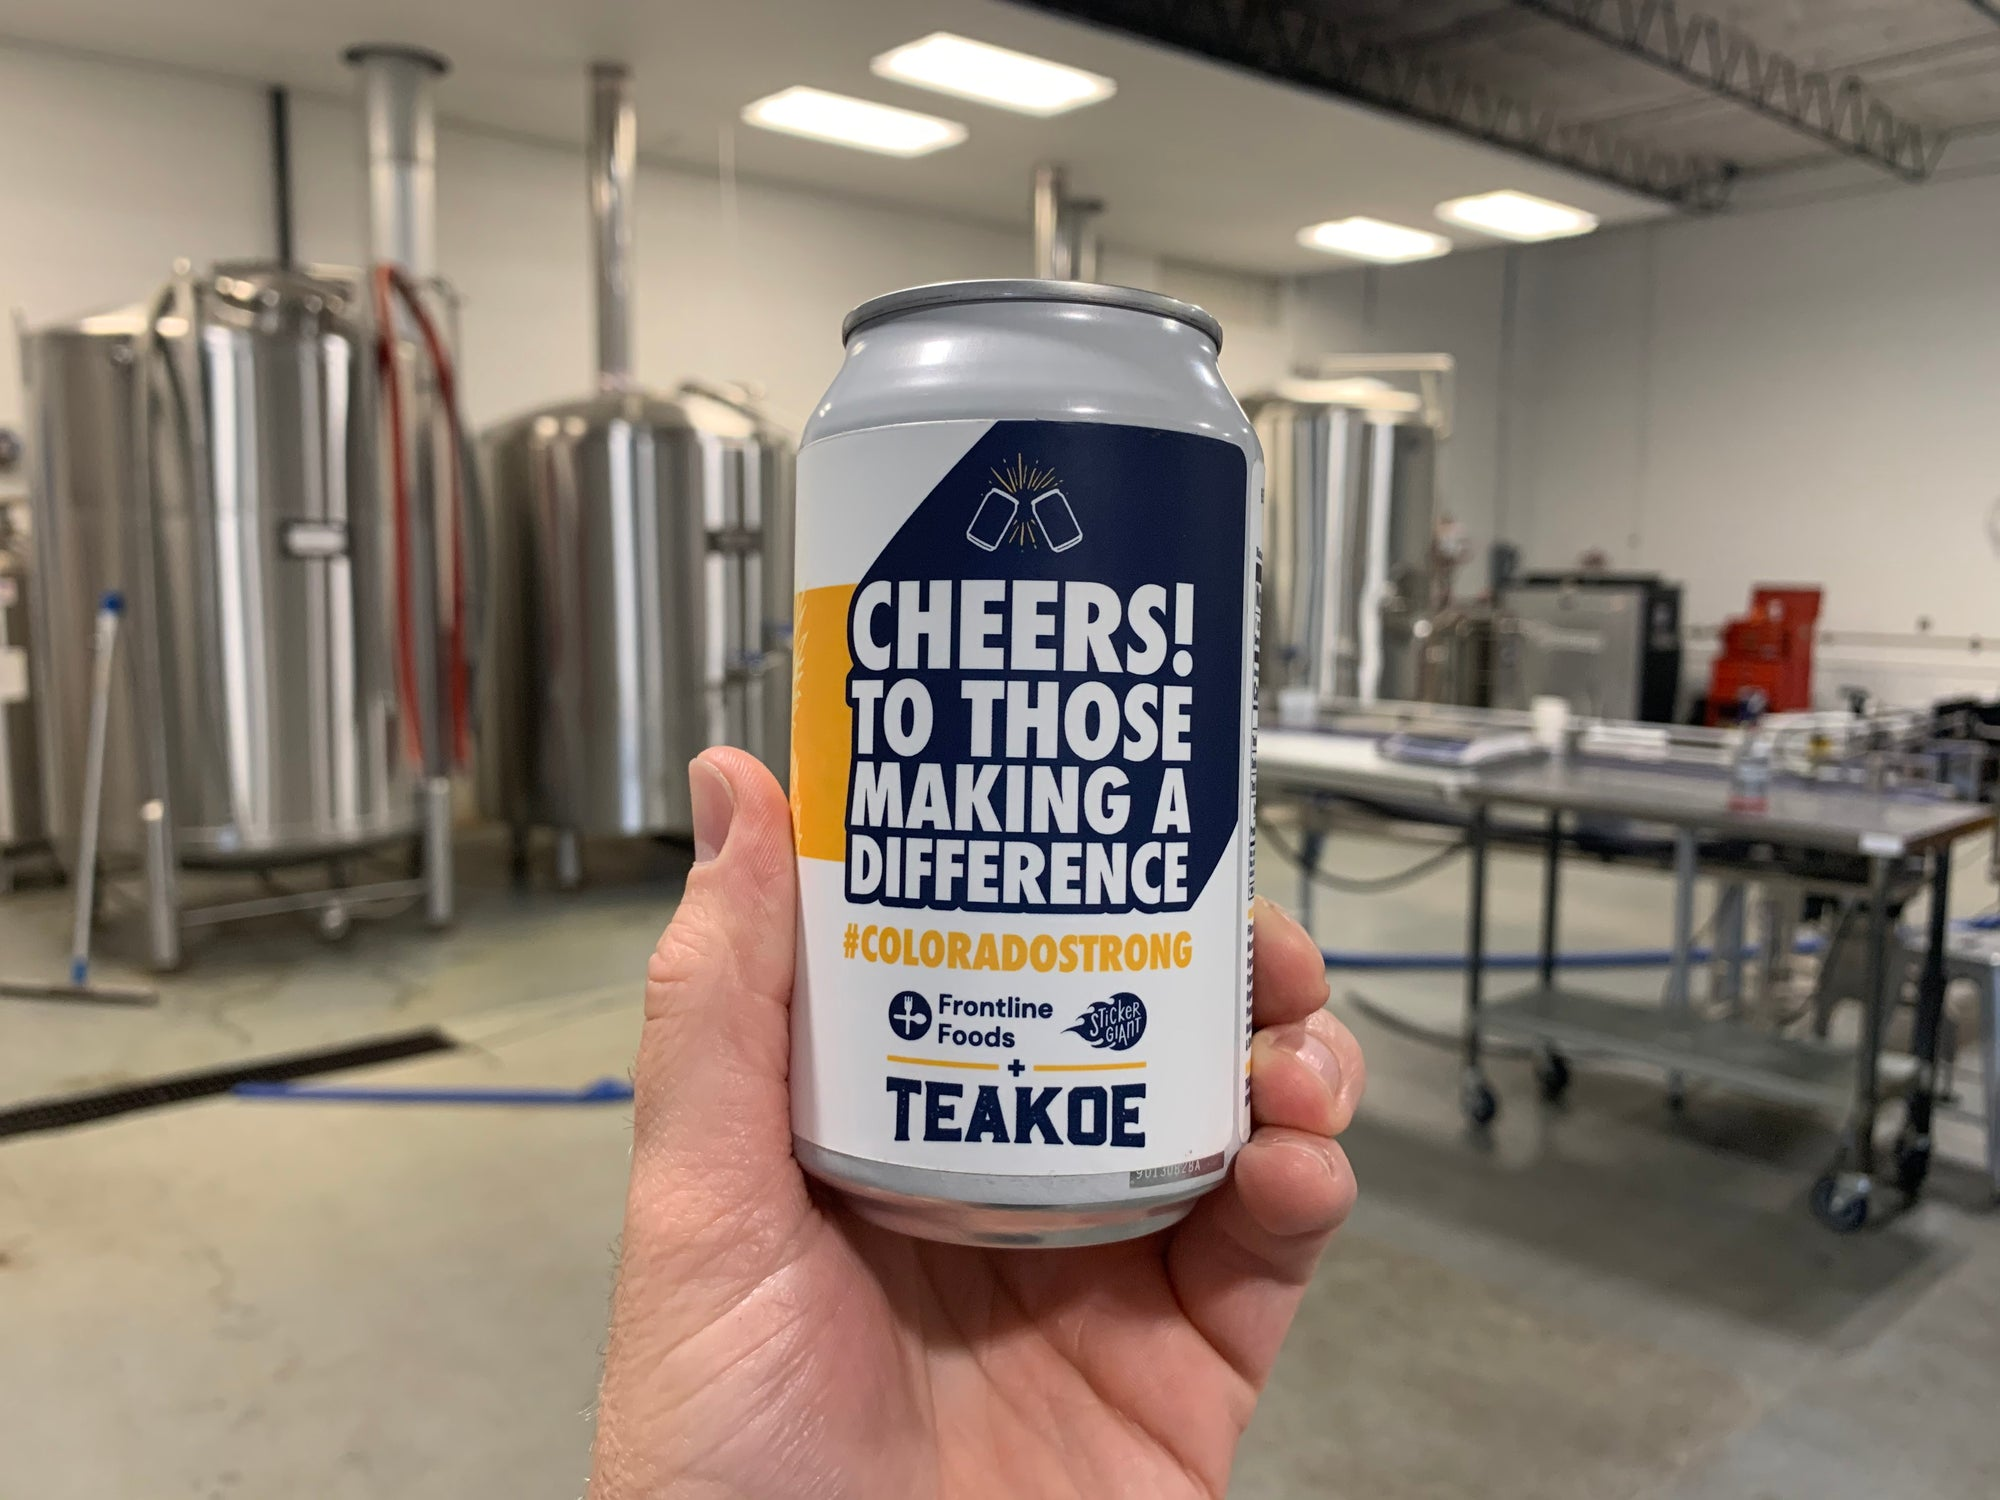 TEAKOE DONATES FIZZY TEA TO SUPPORT LOCAL FRONT LINE & ESSENTIAL WORKERS